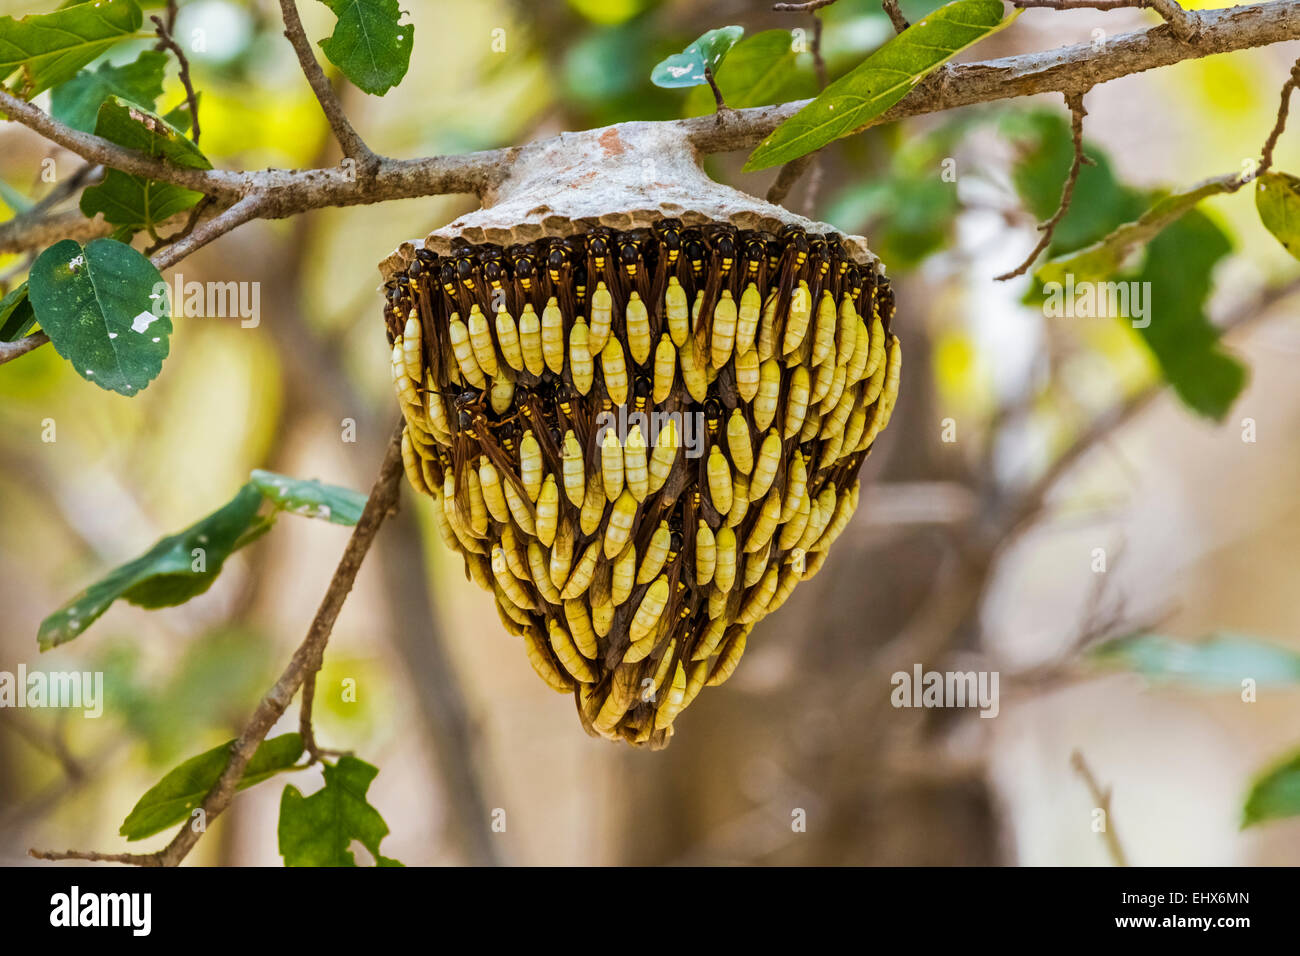 Wasp Nest In Tree Stock Photos & Wasp Nest In Tree Stock Images ...